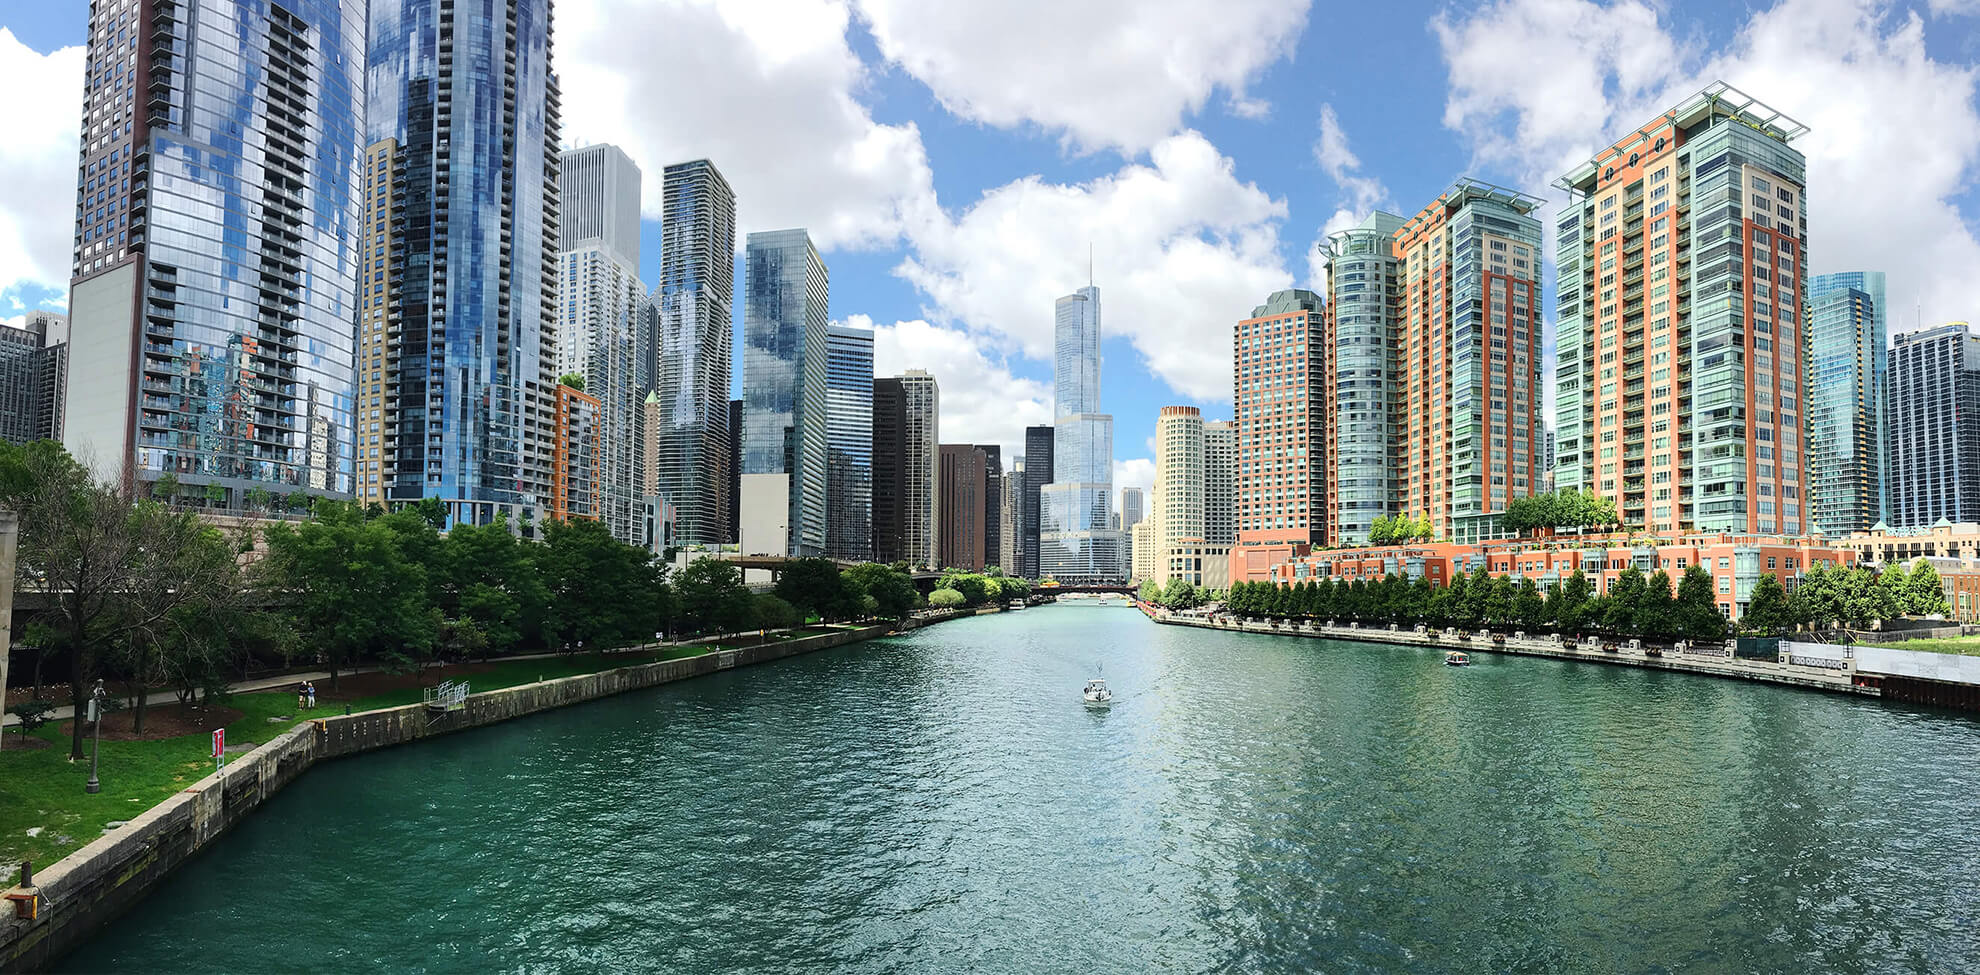 Chicago Web Design - Plaudit